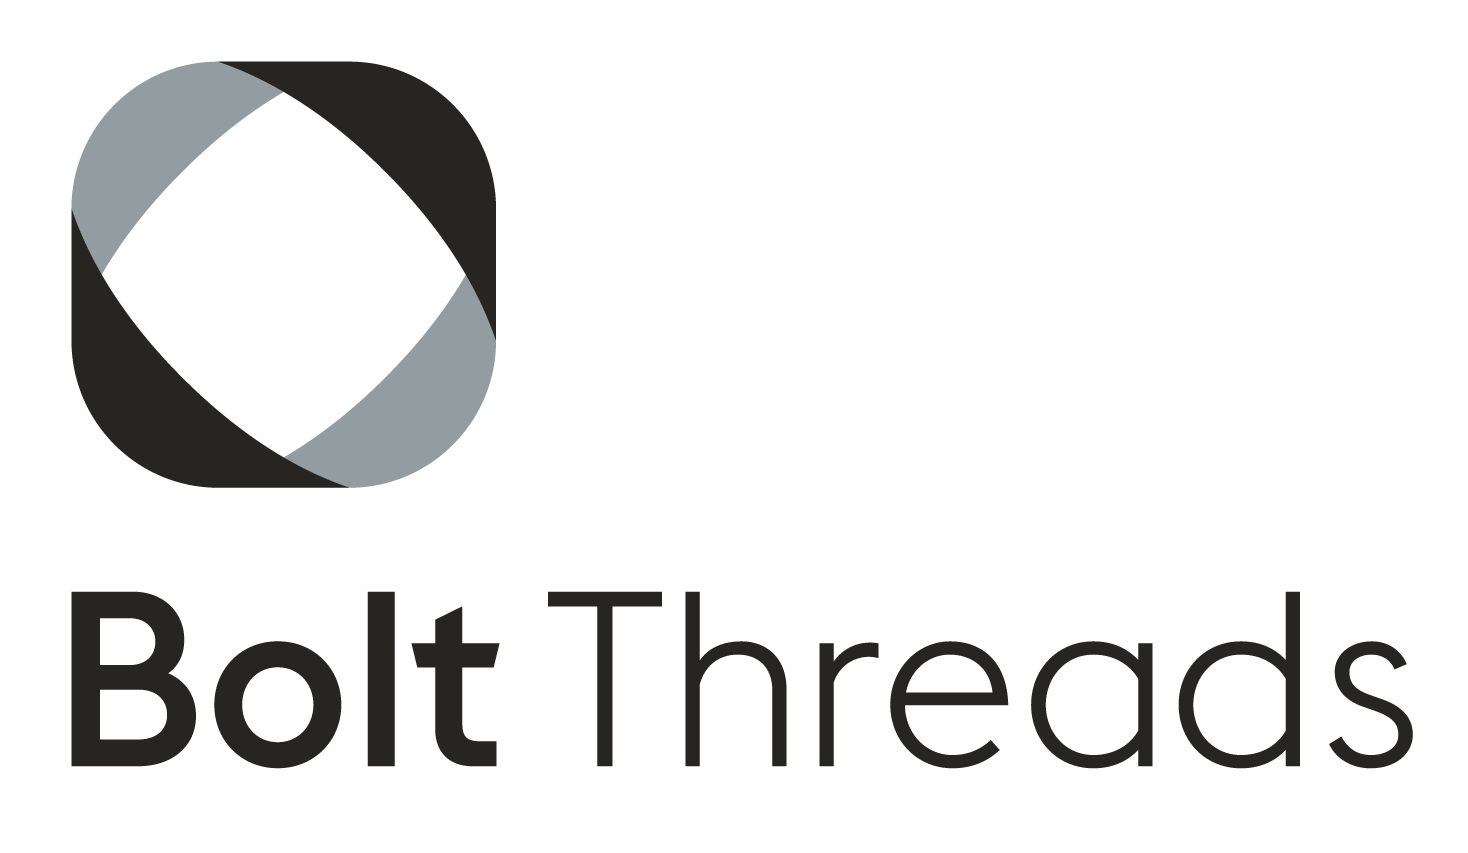 Bolt Threads